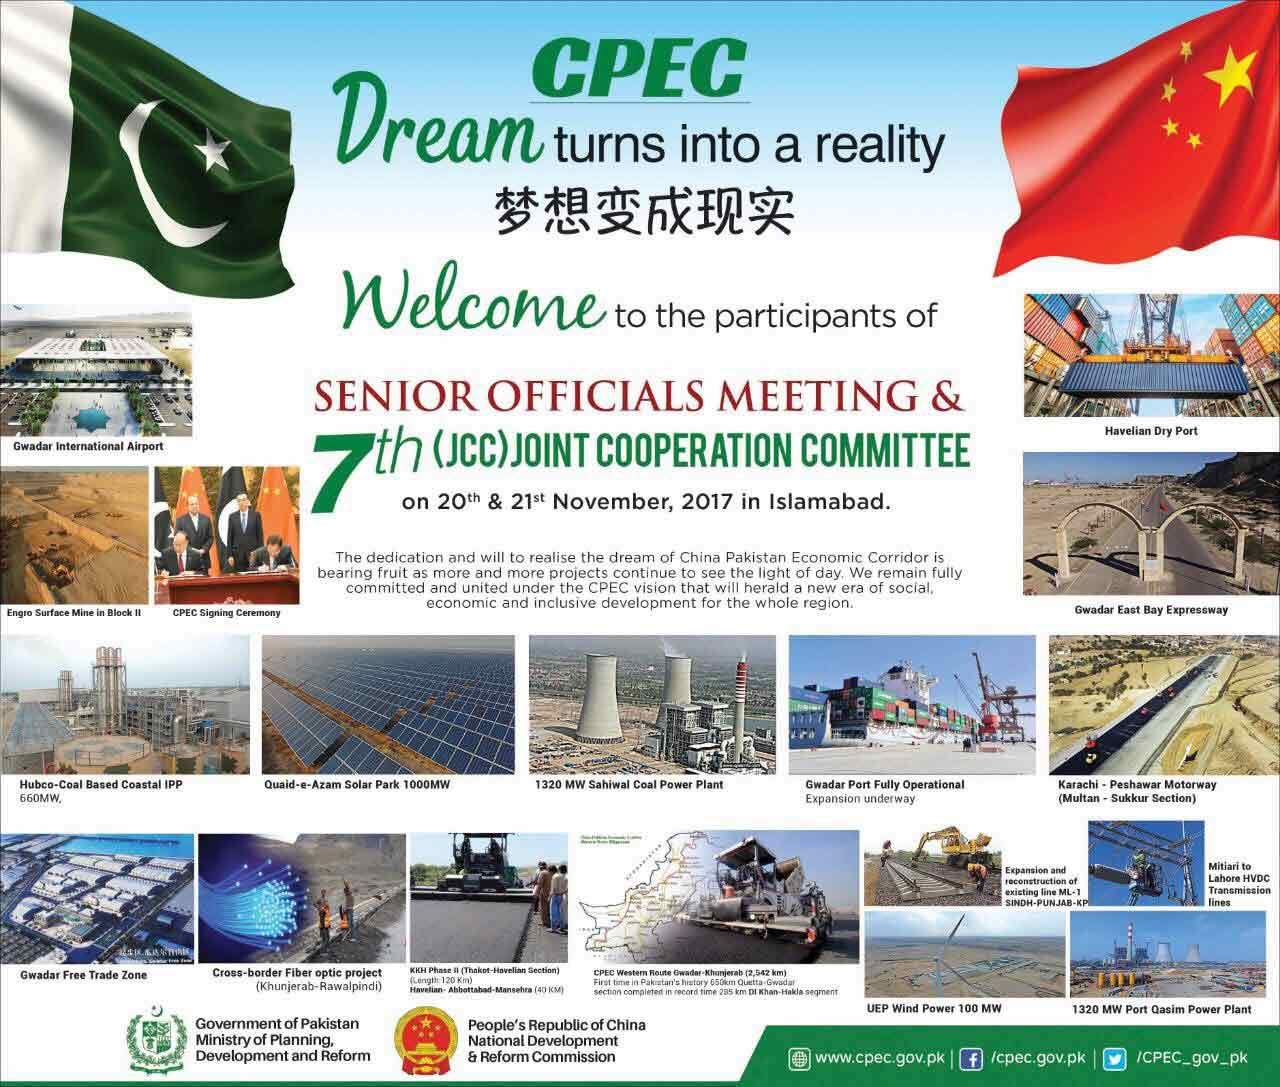 CPEC Senior Official Meeting (SOM) in Islamabad on 20th November 2017